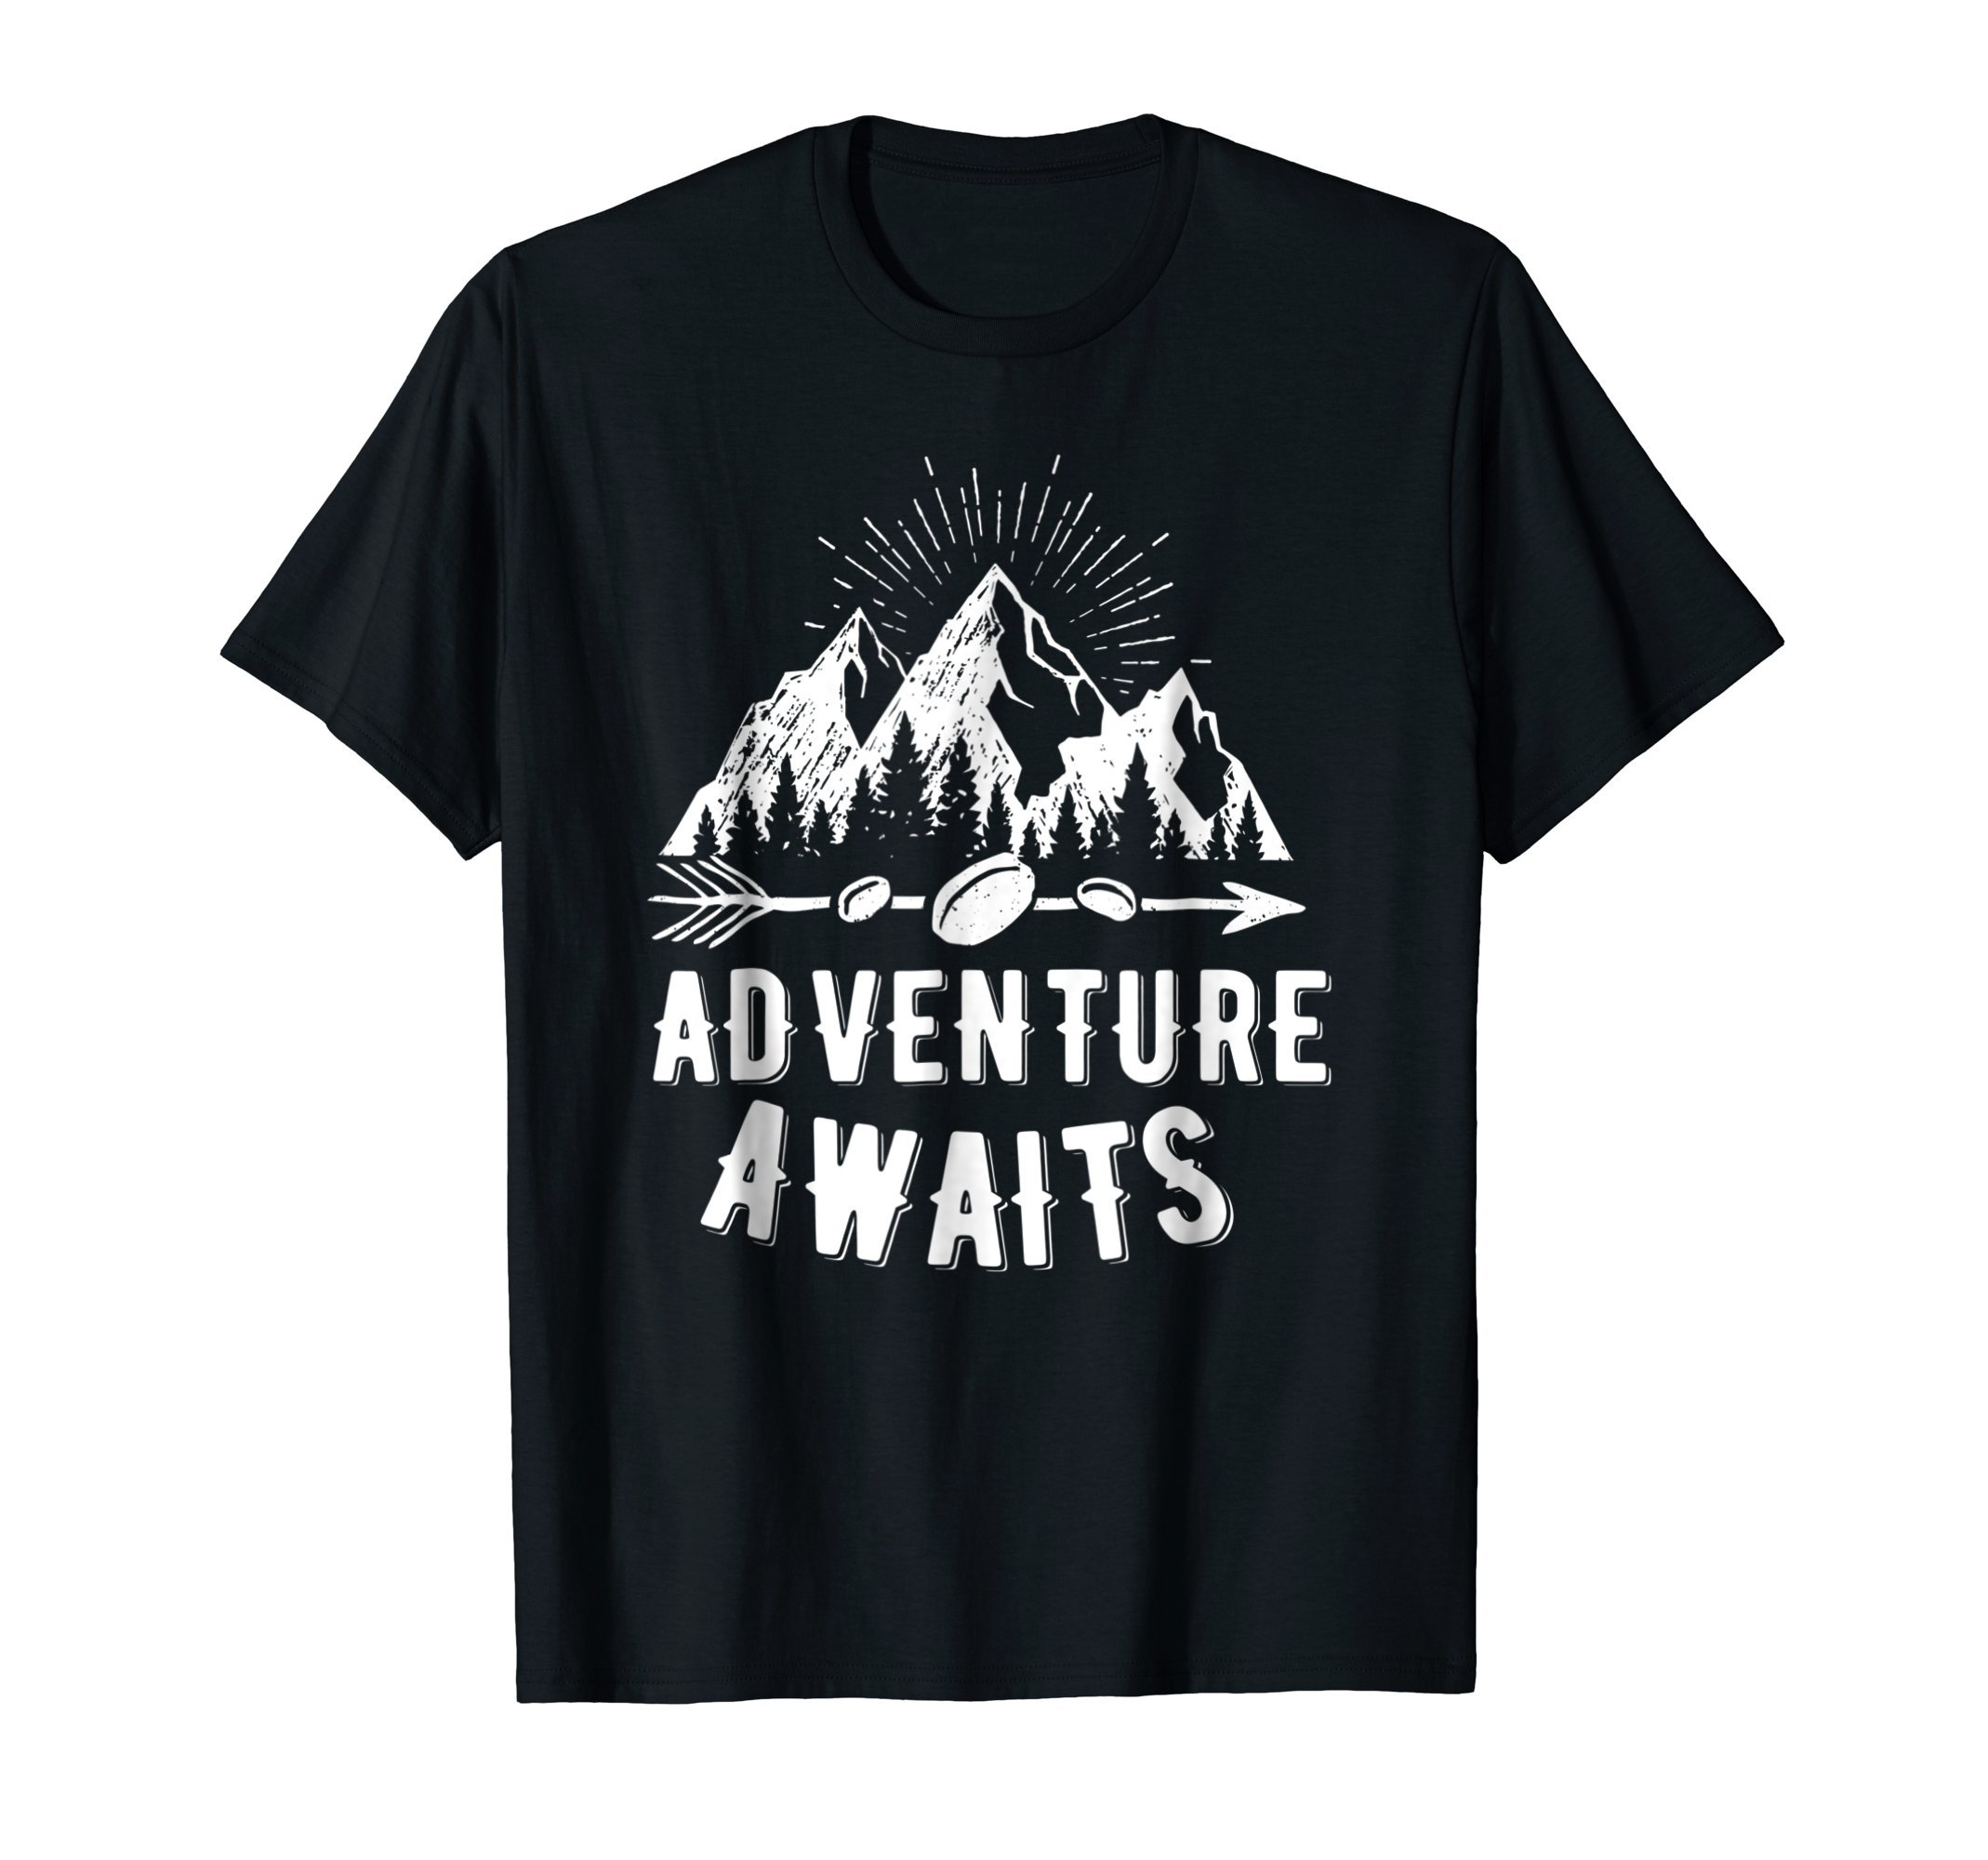 Adventure Awaits Camping, RV, and Outdoor Travel T-shirt by Adventure shirts and tees (Image #1)